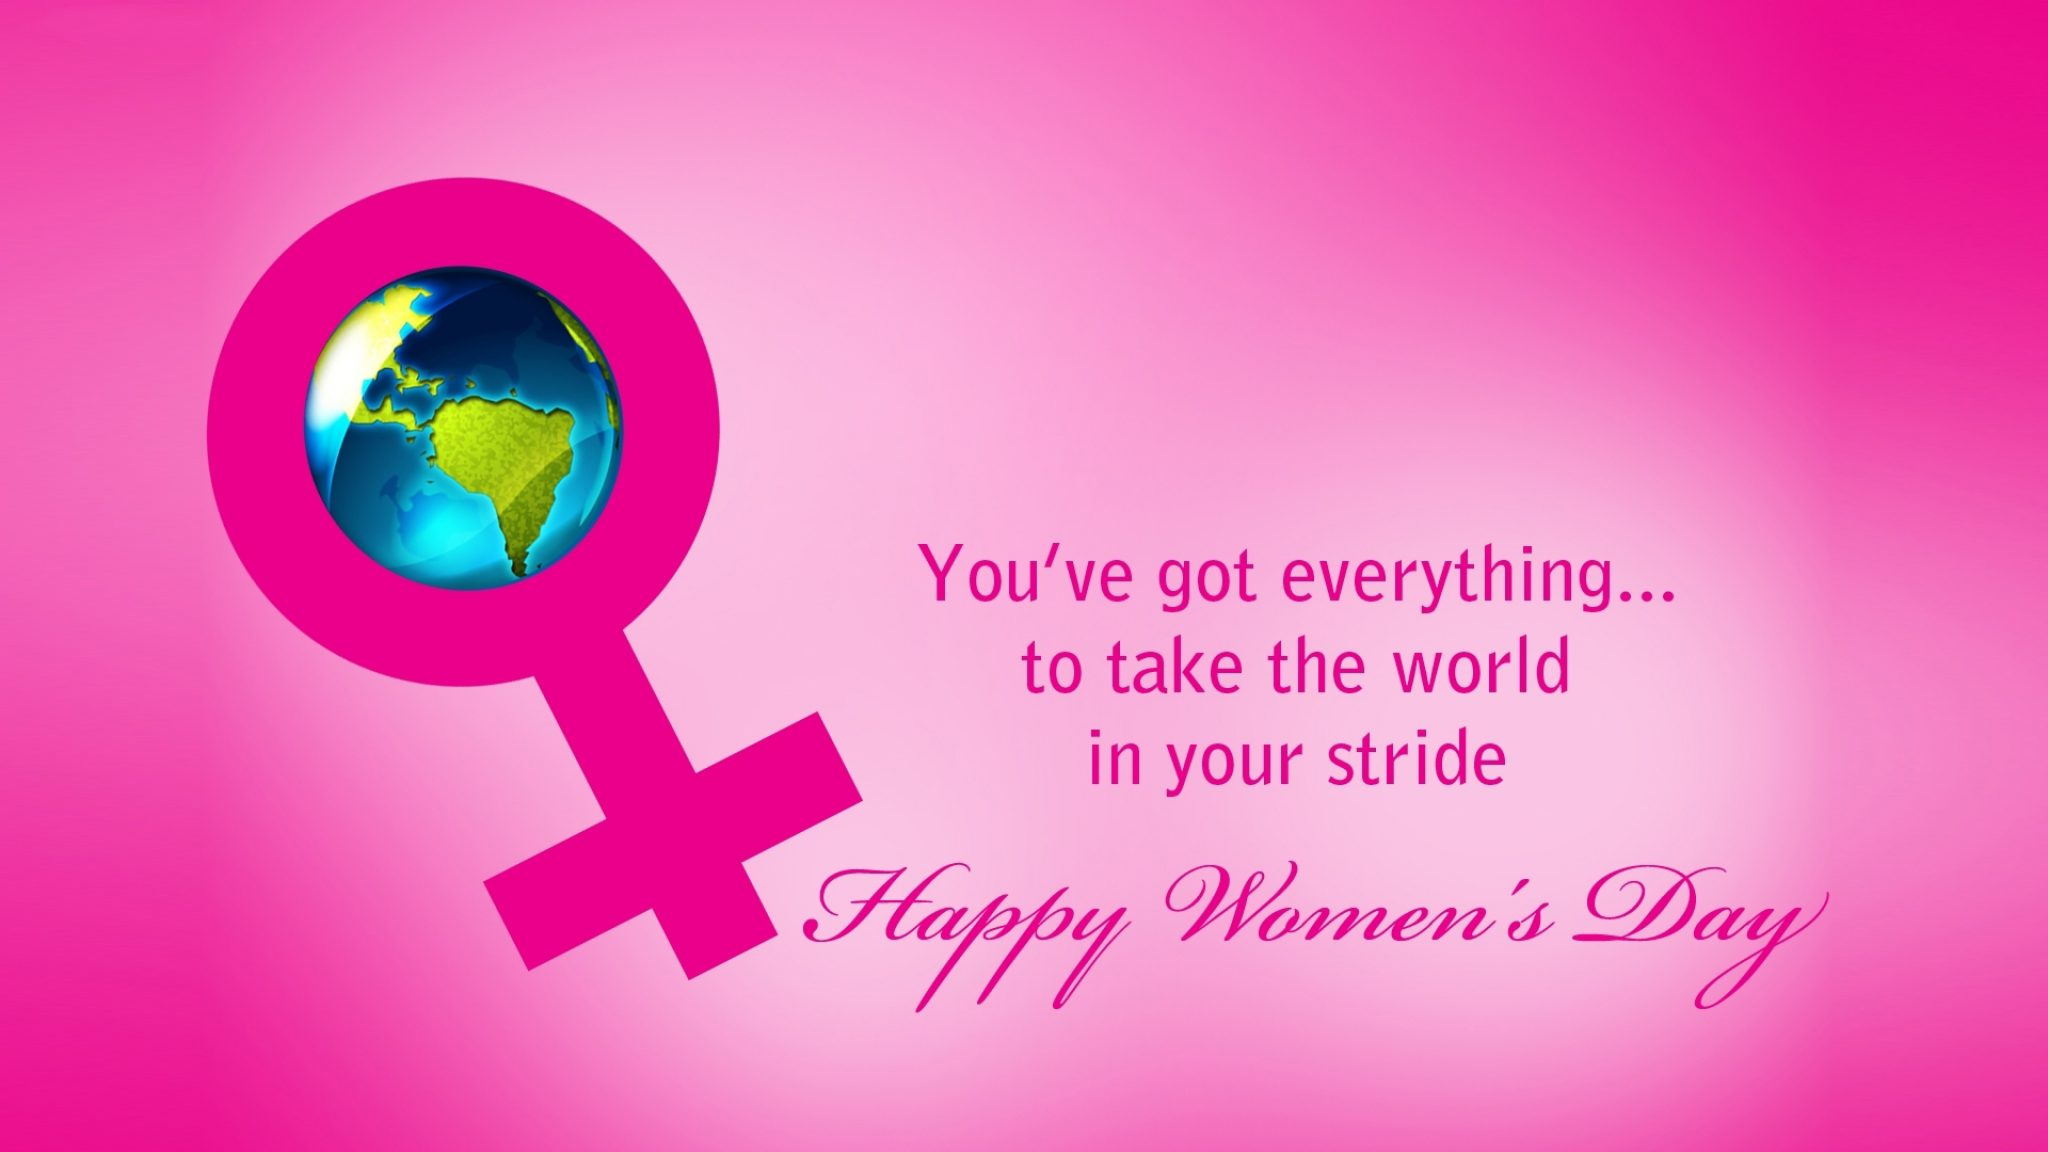 Hapy-International-Womens-Day-backgrounds-08